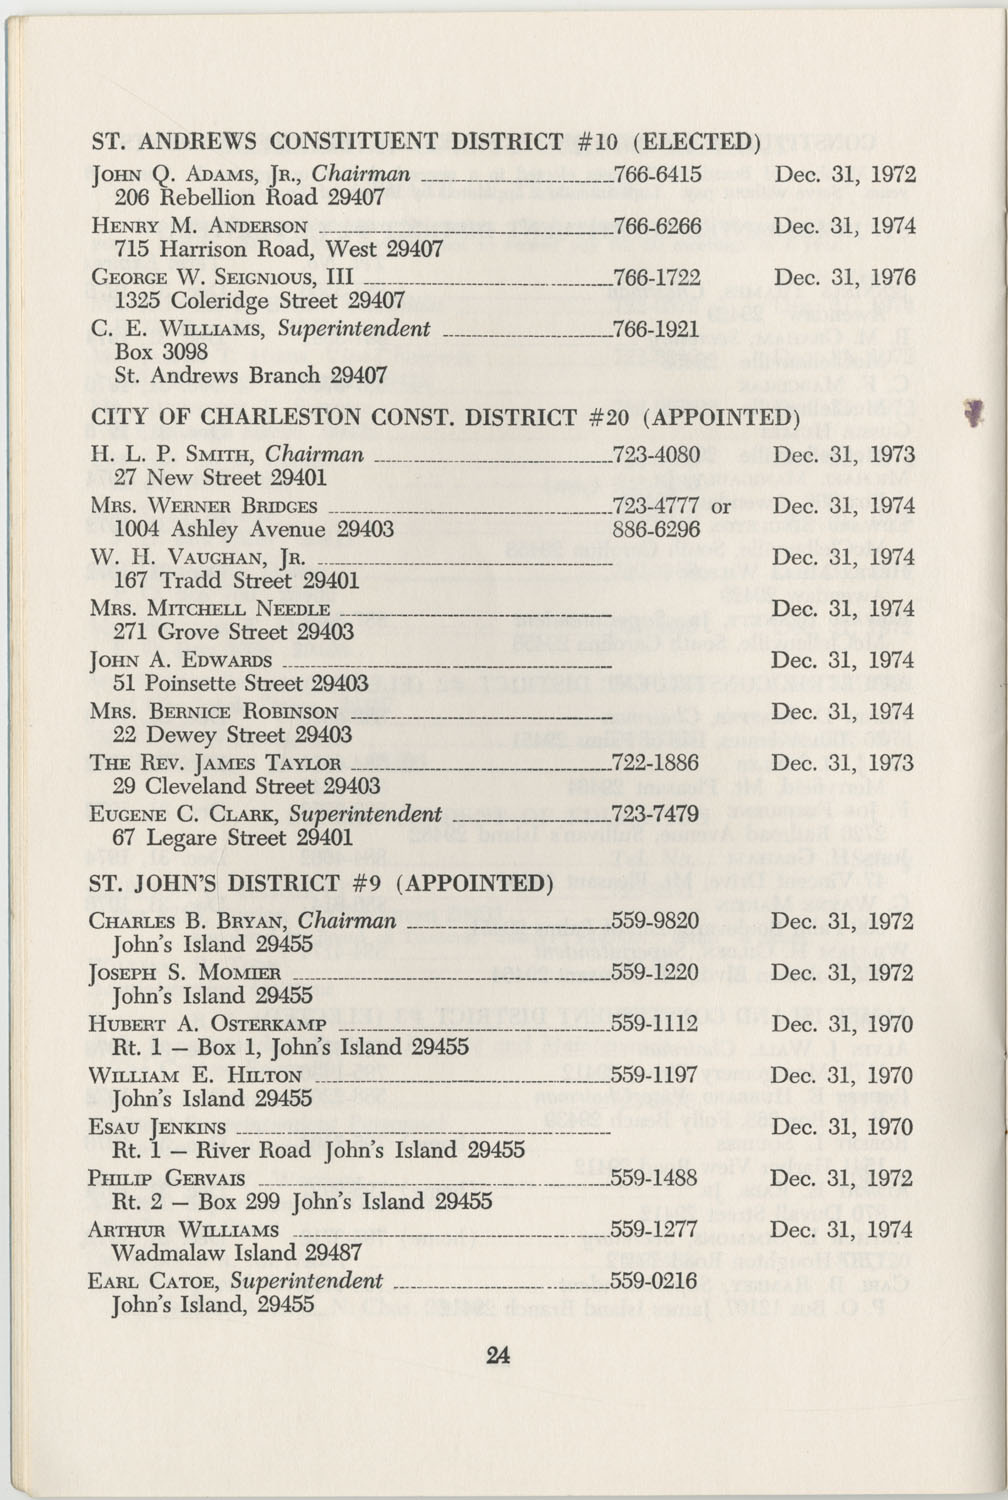 Directory of Public Officials, 1972-1973, Page 24